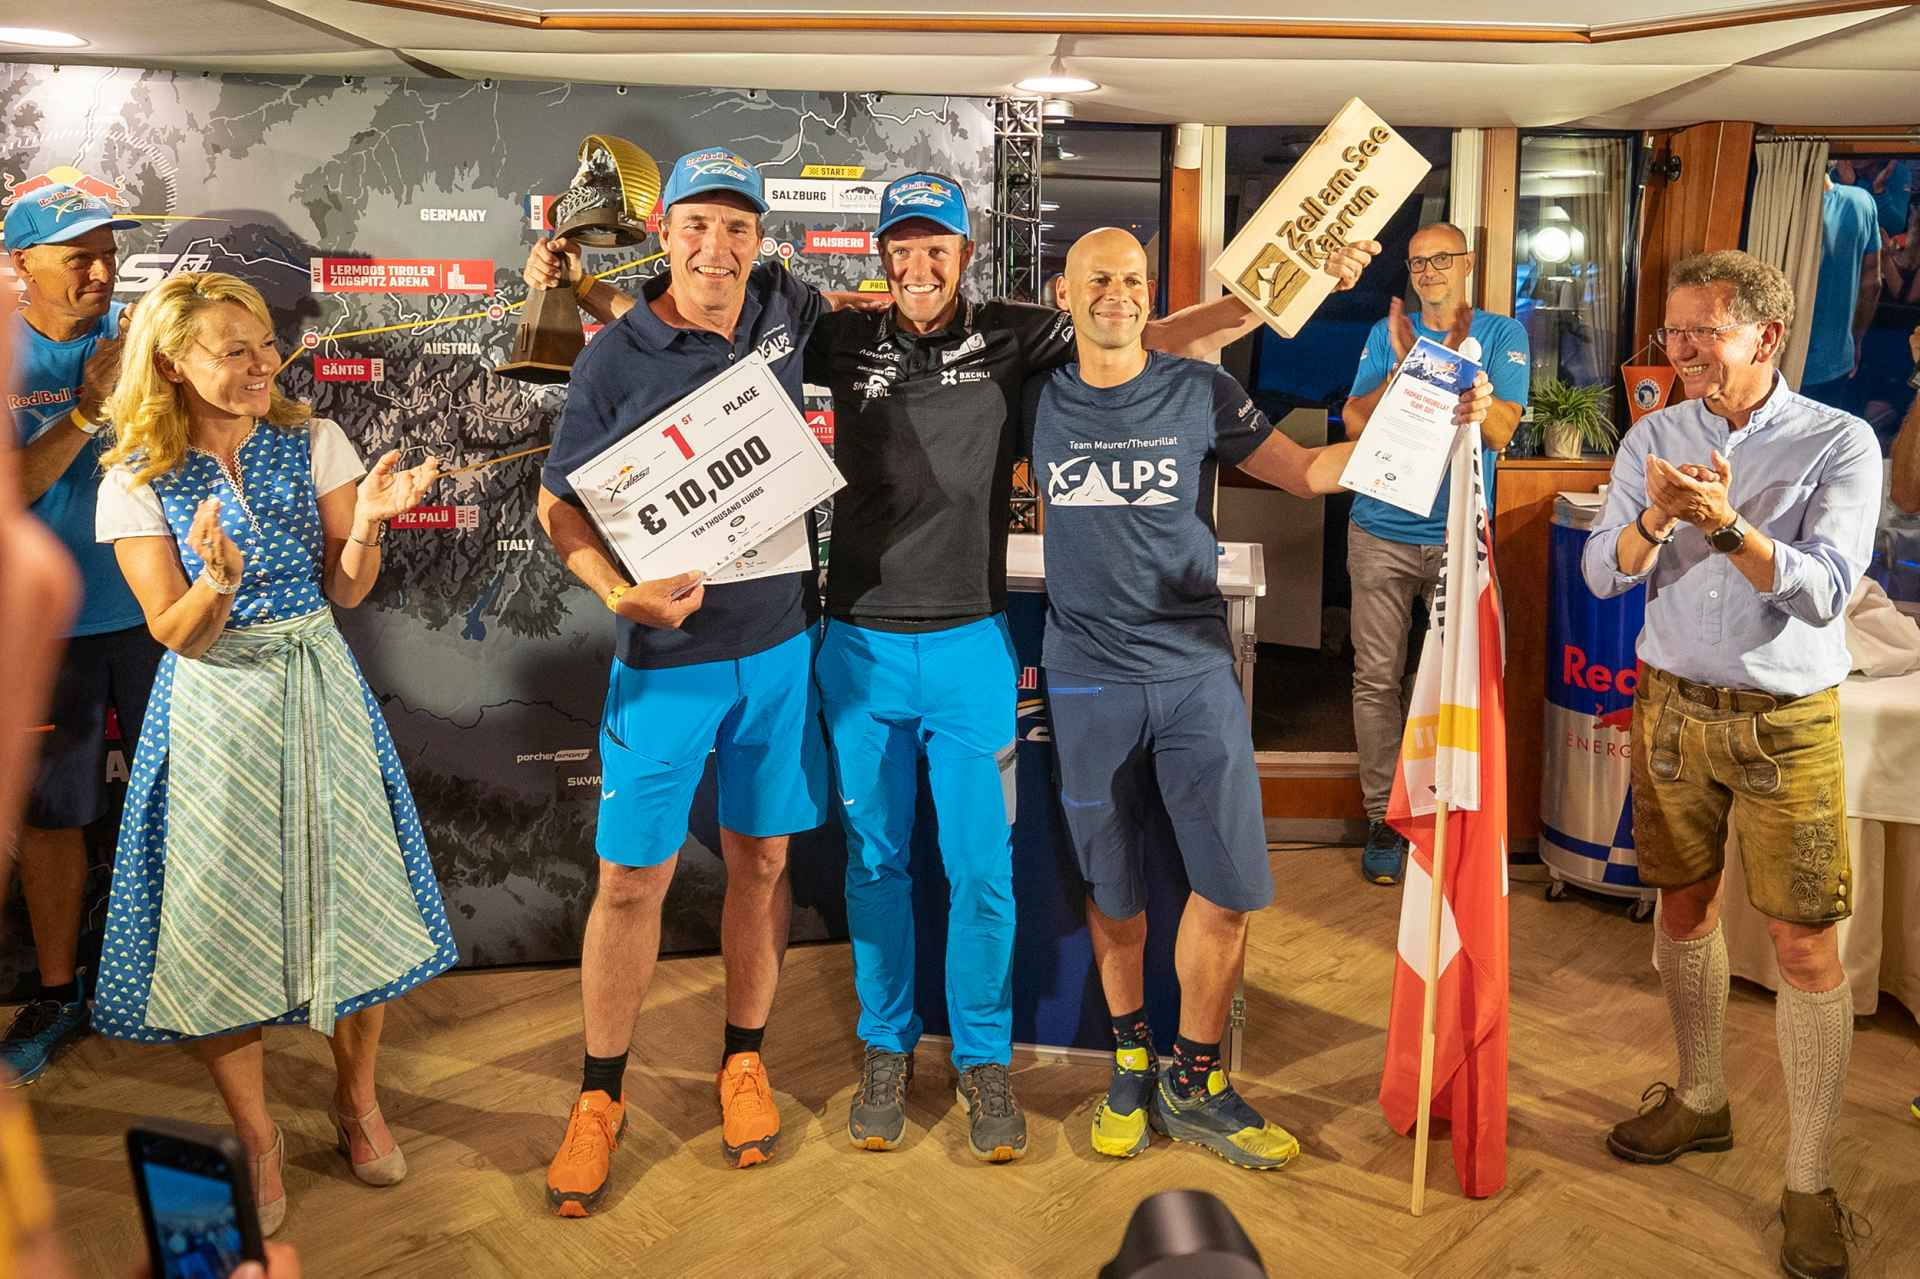 RBC seen during the Red Bull X-Alps in Zell am See, Austria on July 2, 2021.